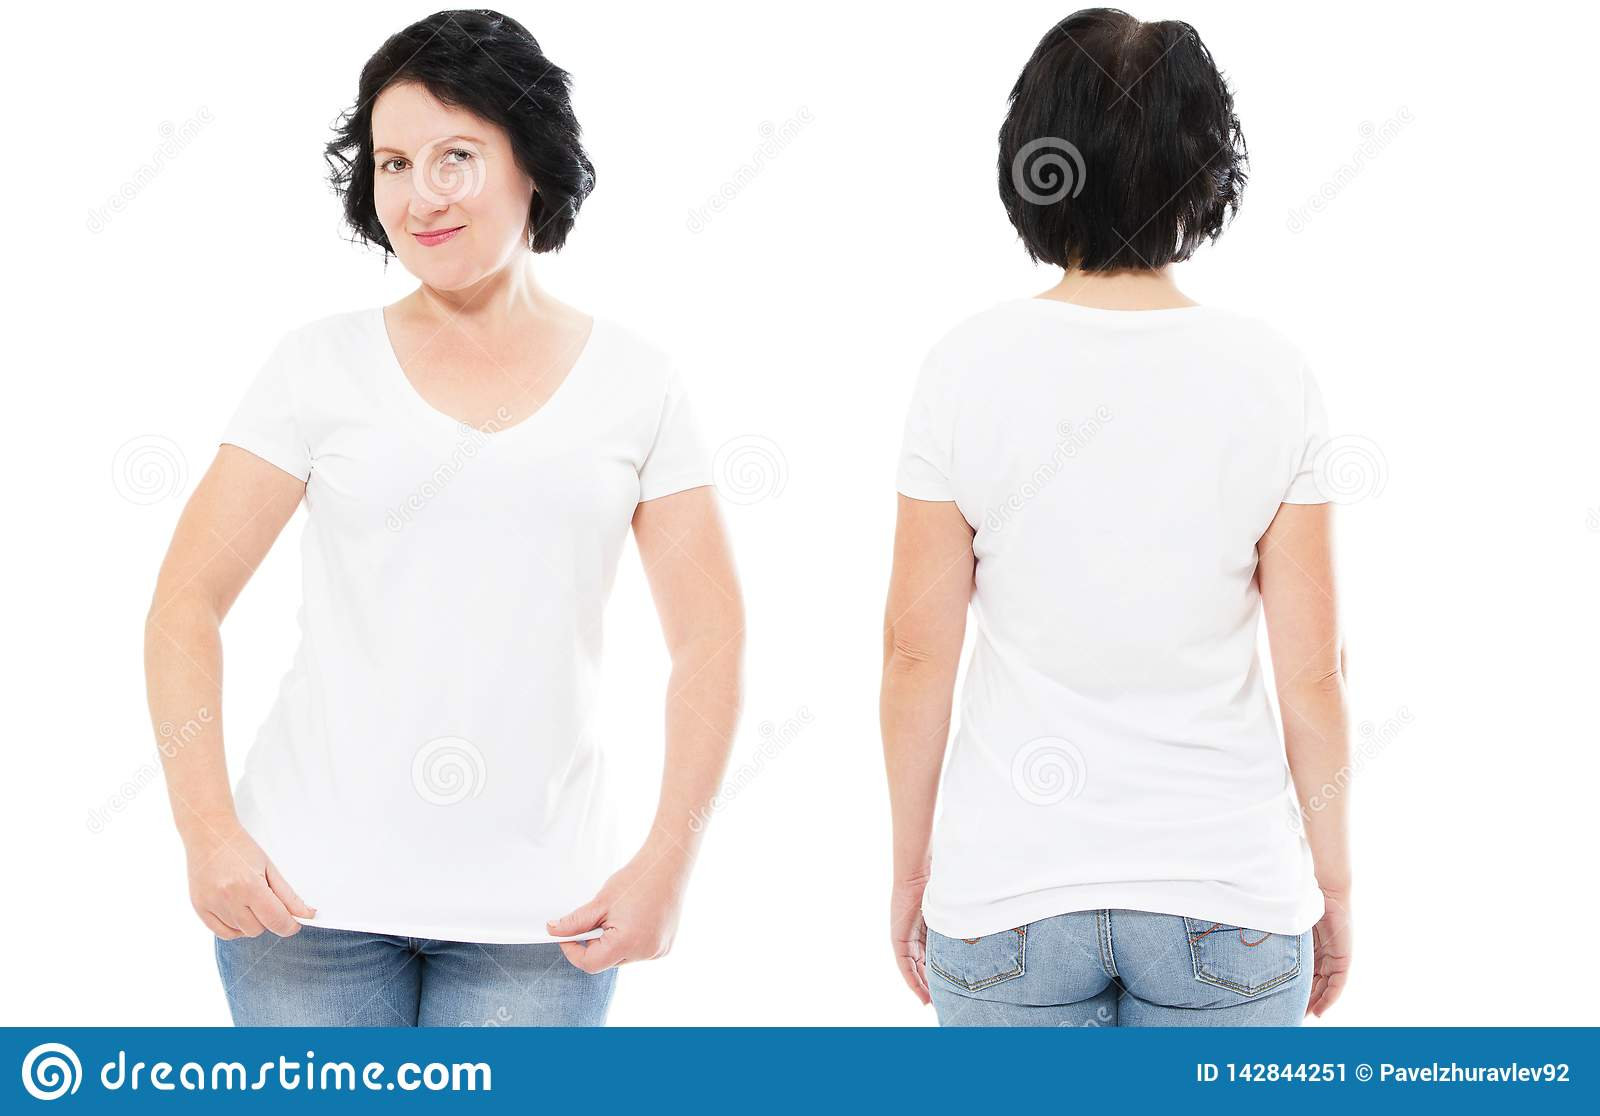 White tshirt set, woman in style T-shirt isolated on white background, tshirt mock up, blank shirt